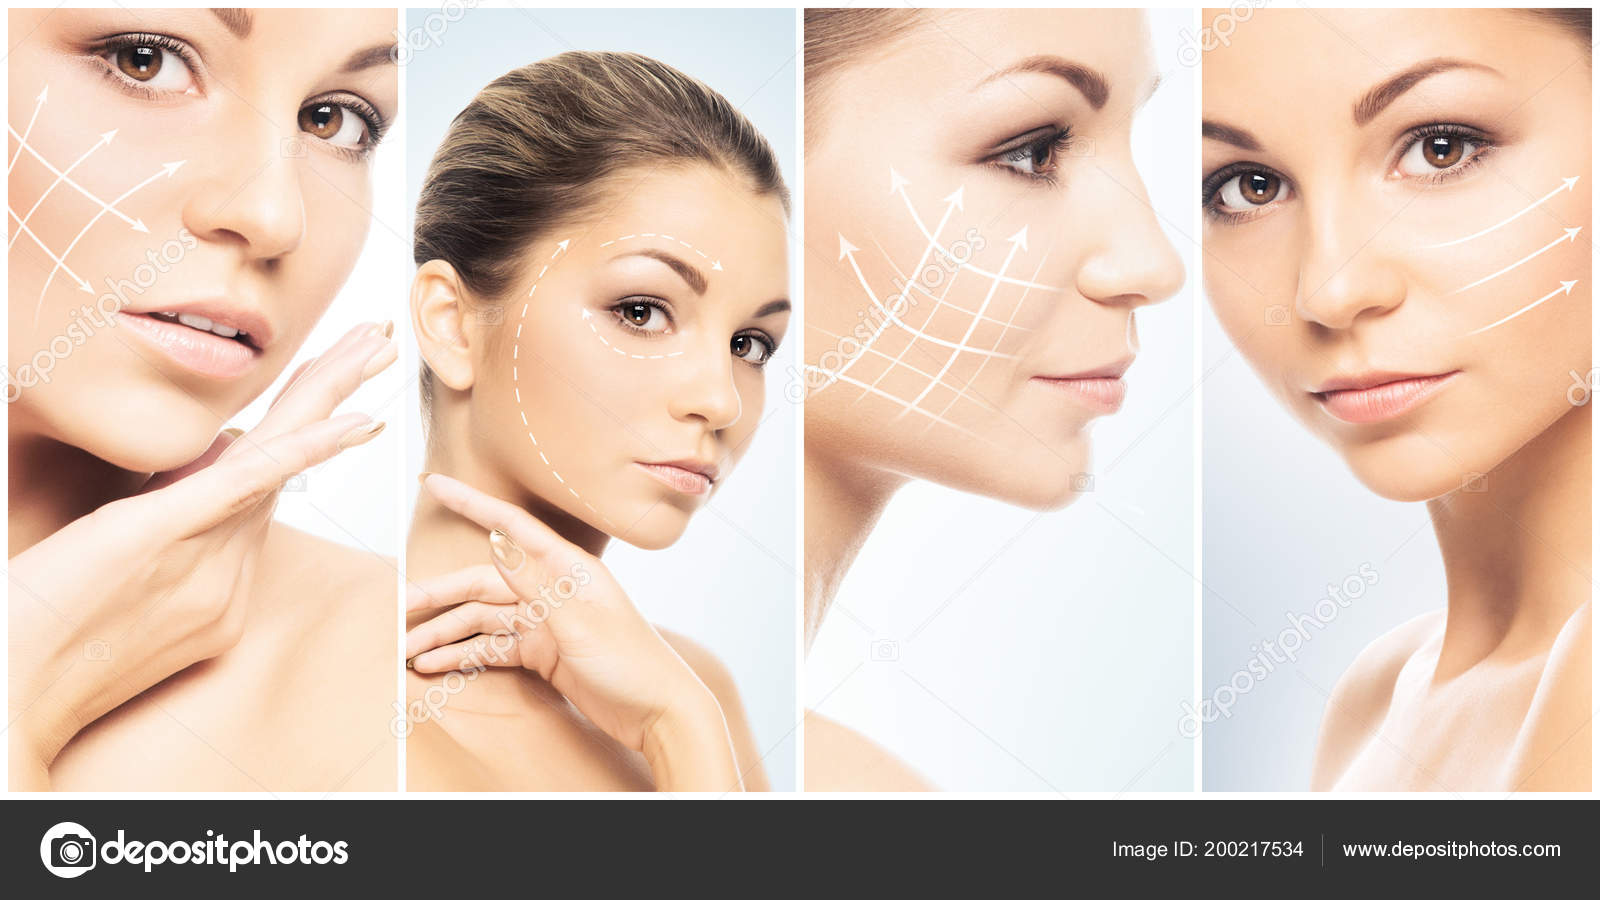 Beautiful Face Young Healthy Girl Collage Plastic Surgery Skin Care Stock Photo C Shmeljov 200217534